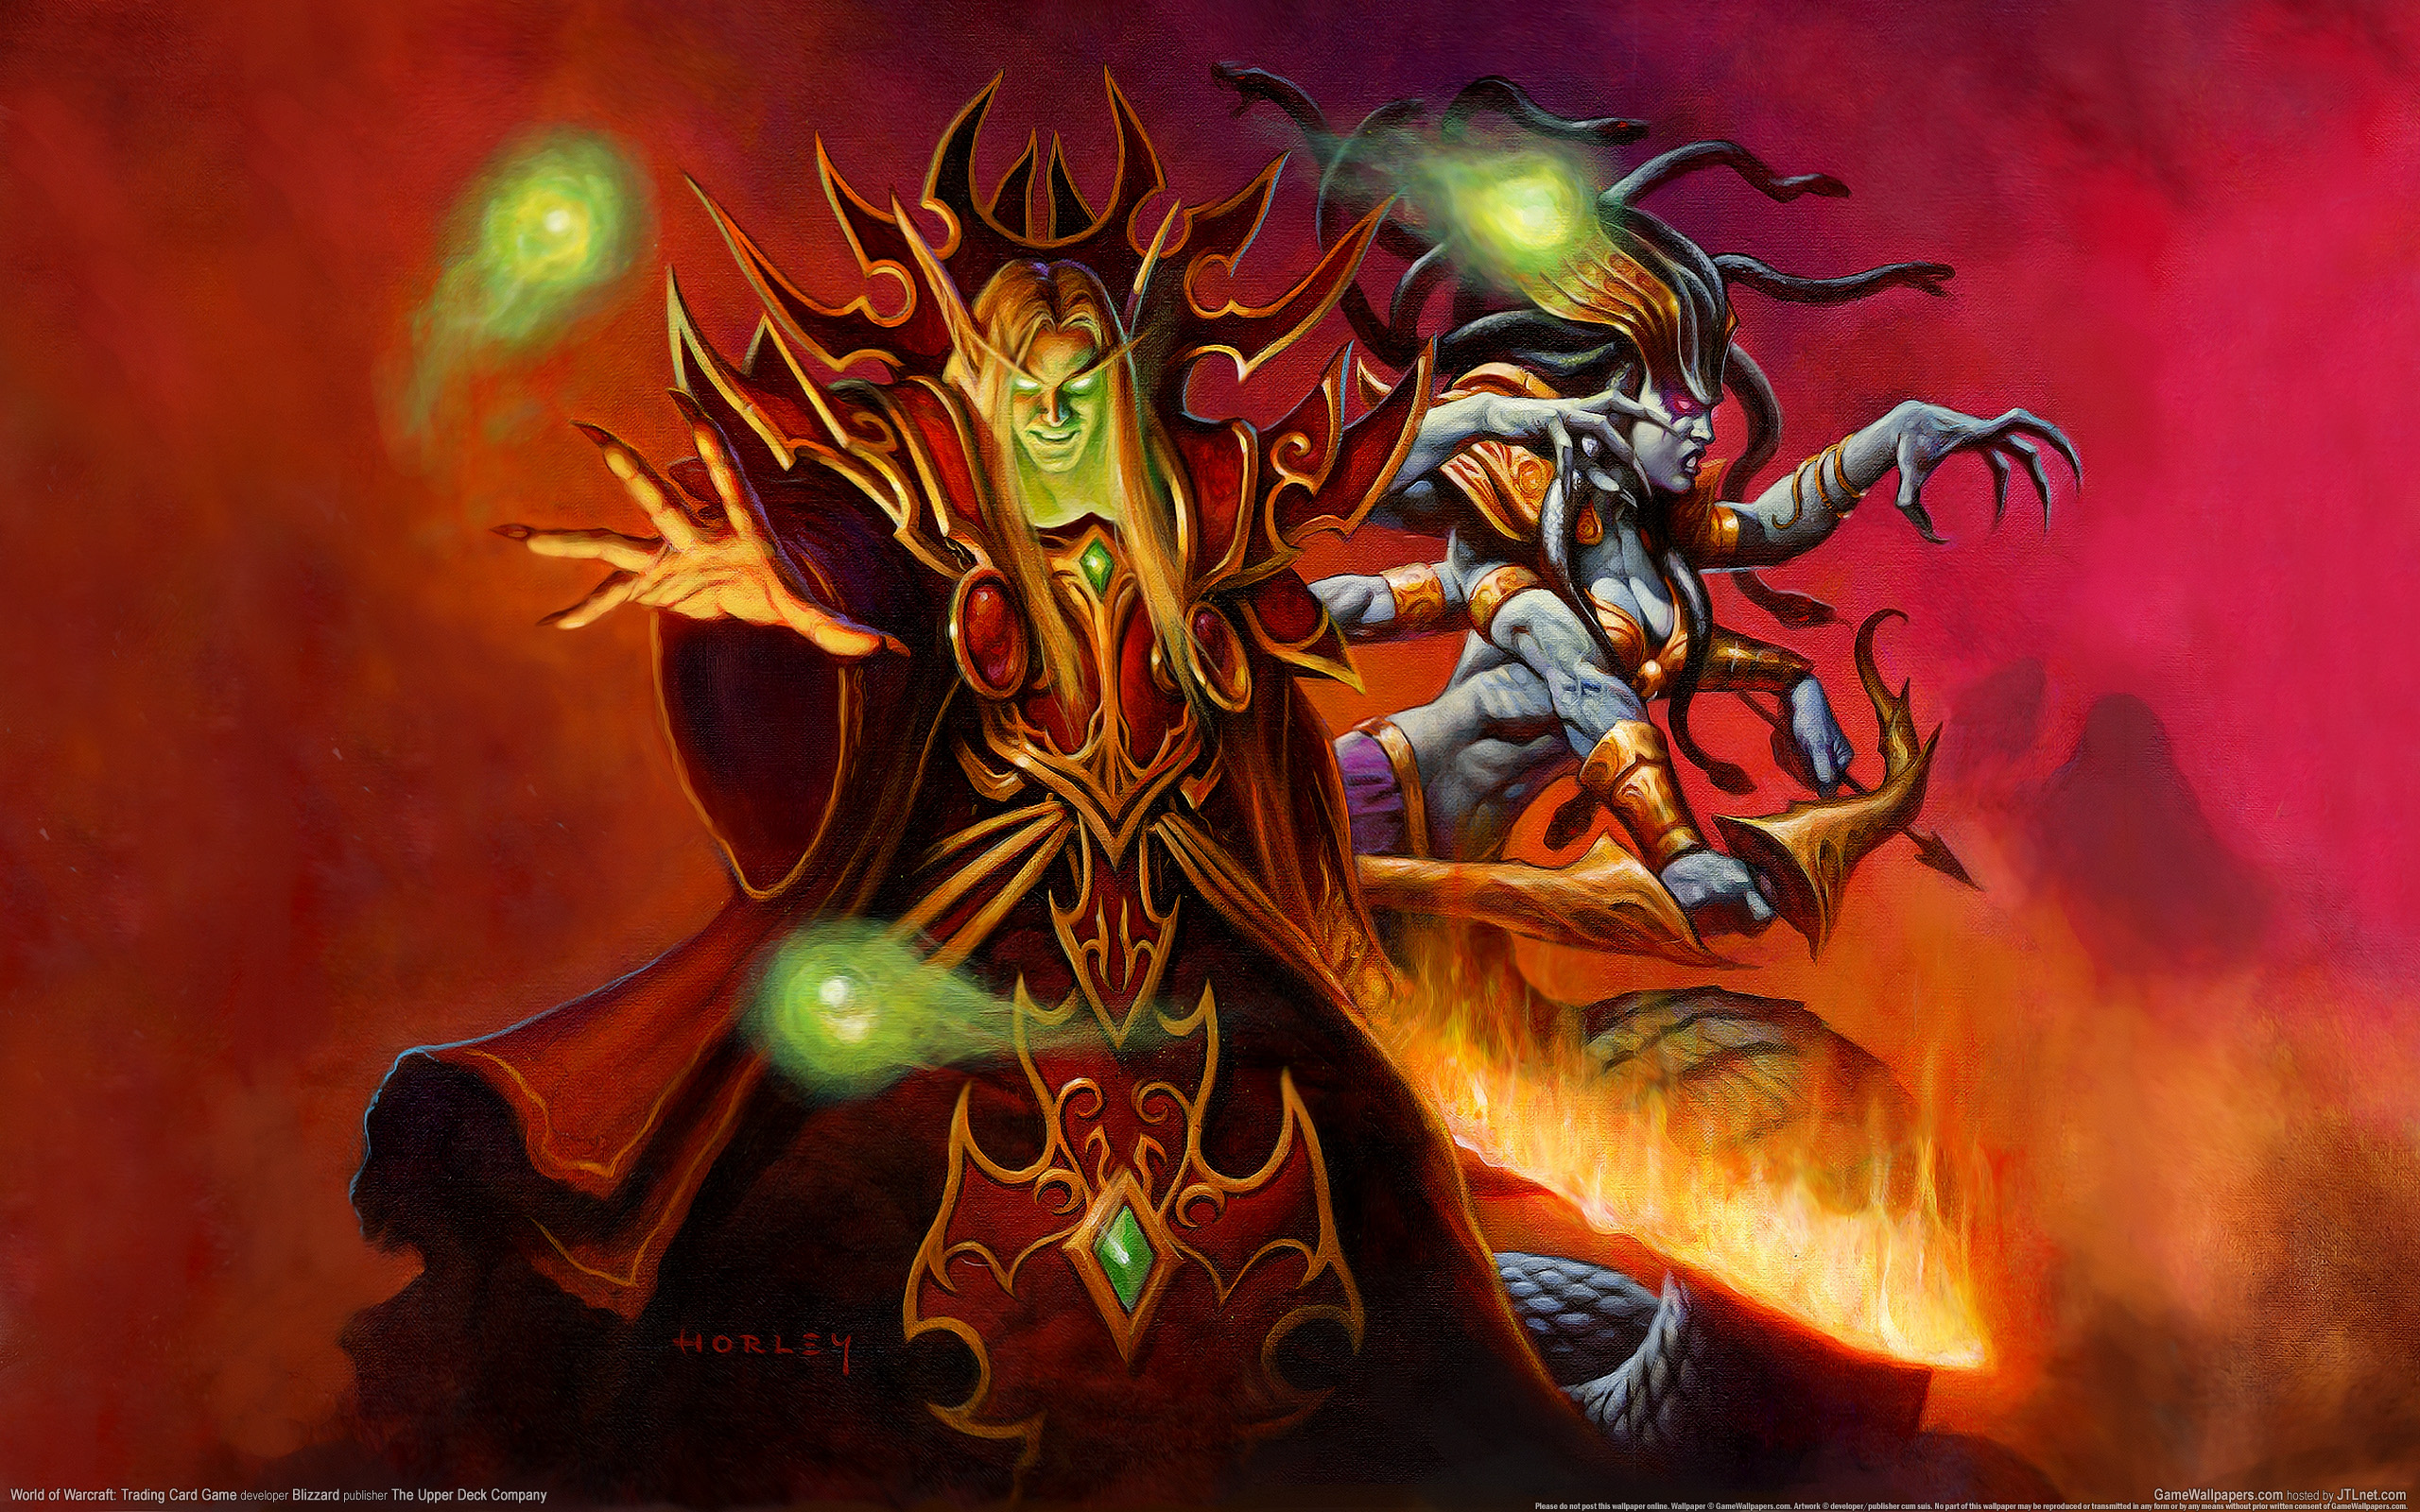 wallpaper world of warcraft trading card game 30 2560x1600